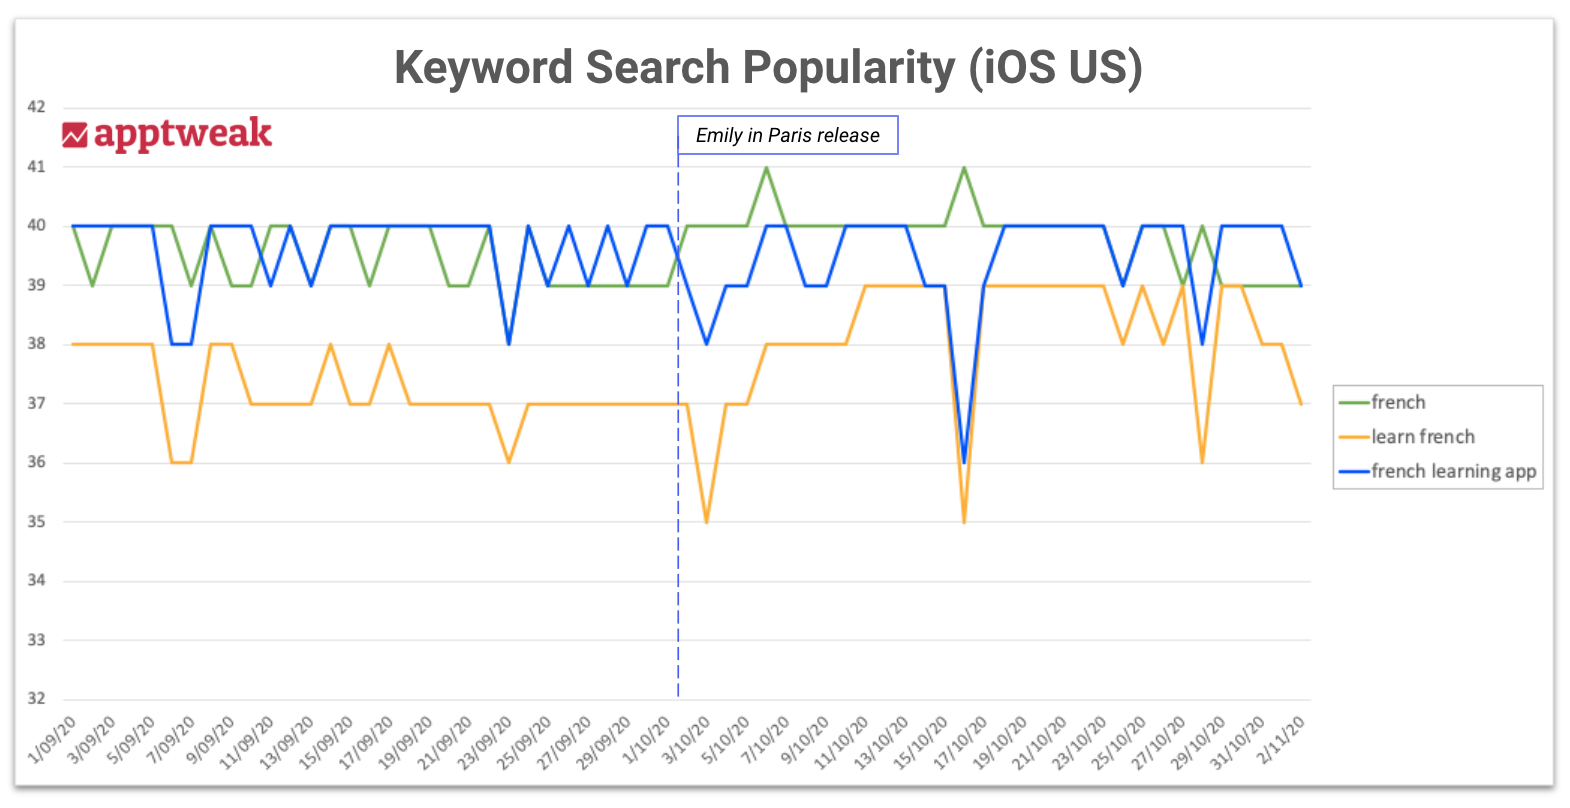 iOS search popularity graph for French learning apps' keywords